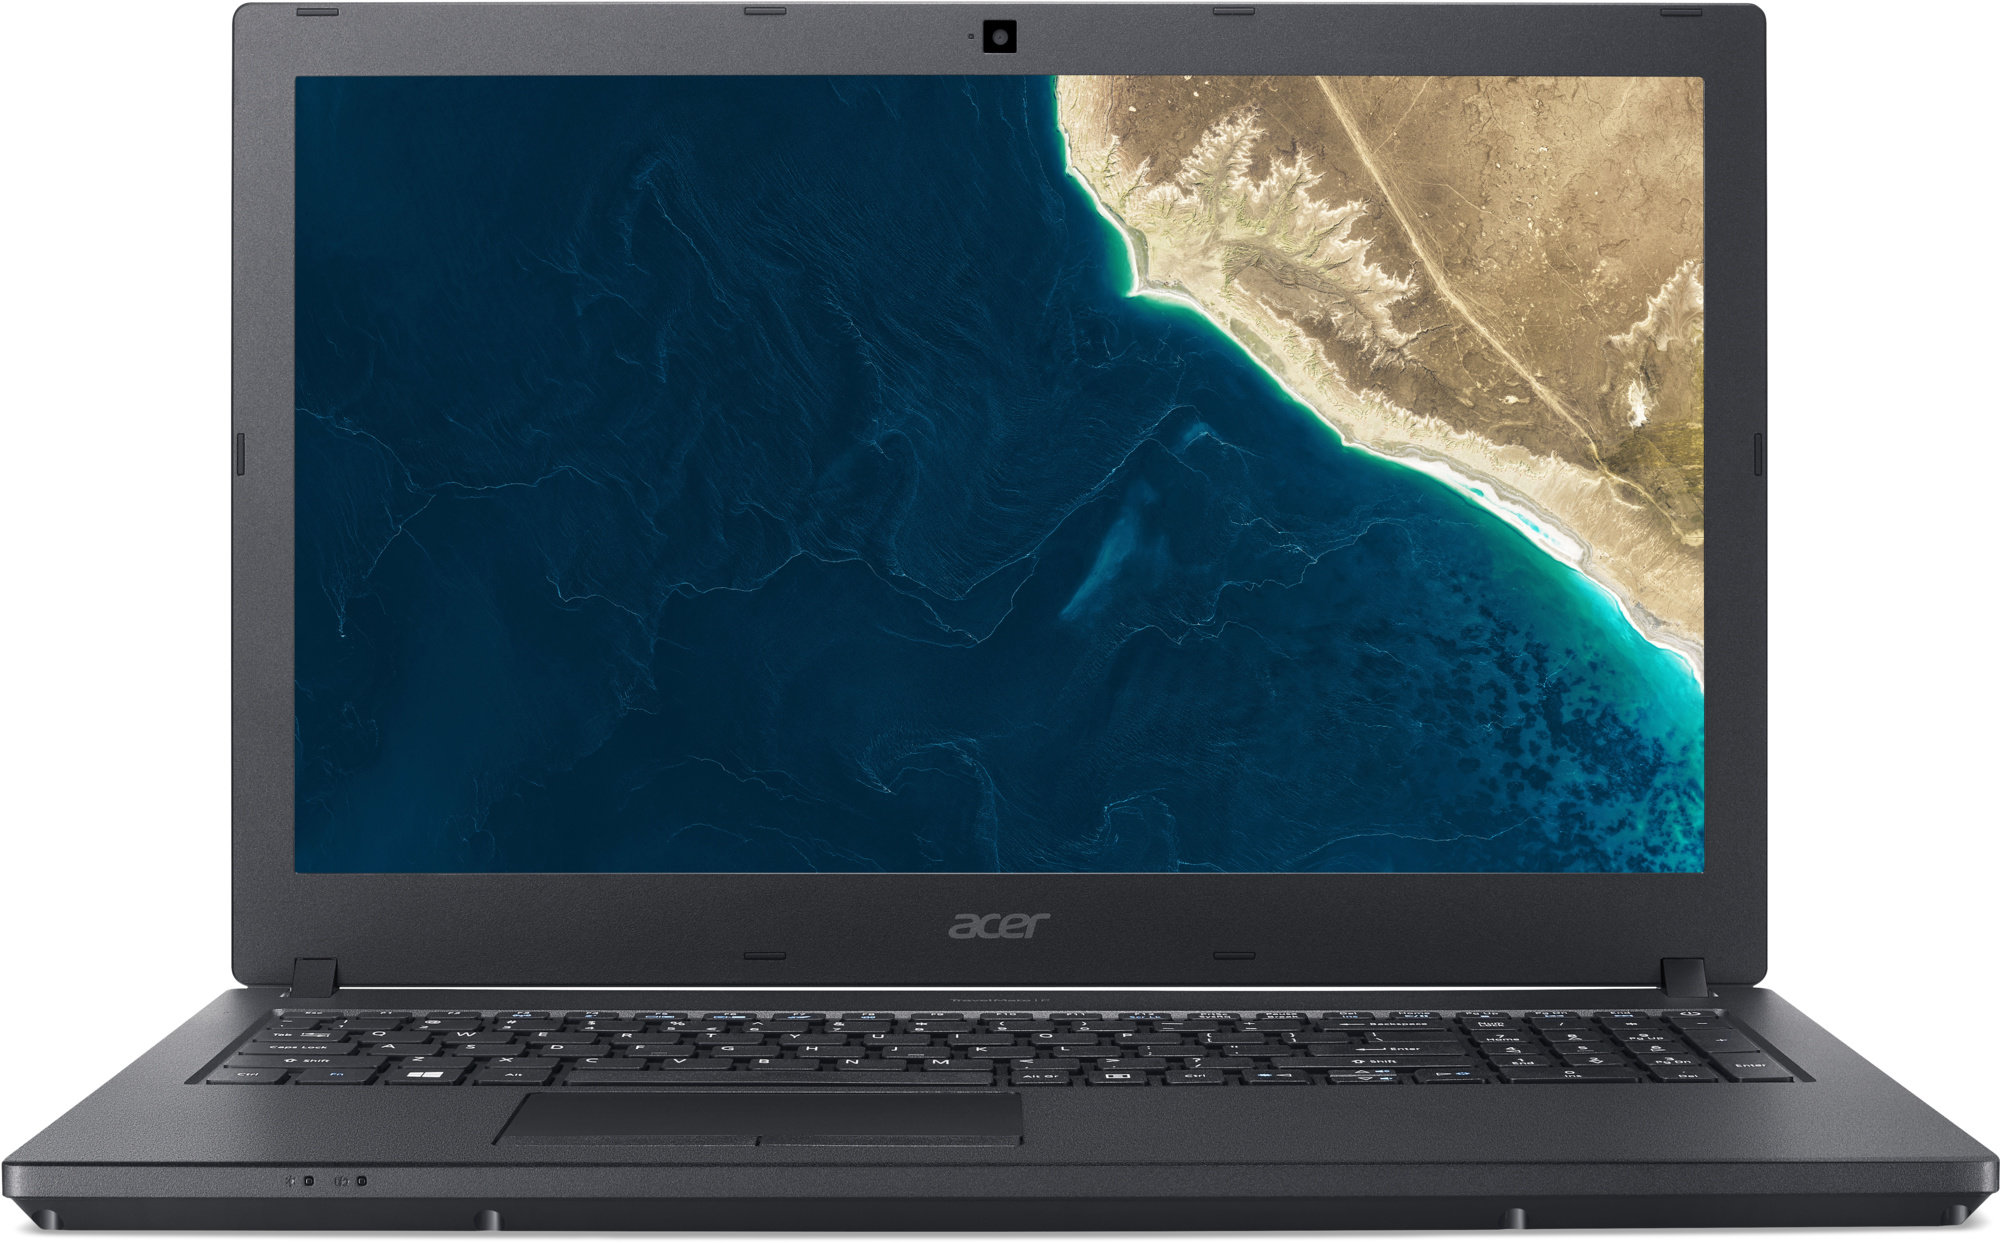 "AcerTravelMate (P2510-M-38PG) i3-7100U/4GB+N/256GB SSD+N/HD Graphics/15.6"" FHD IPS LED matný/W10 Pro/Black"